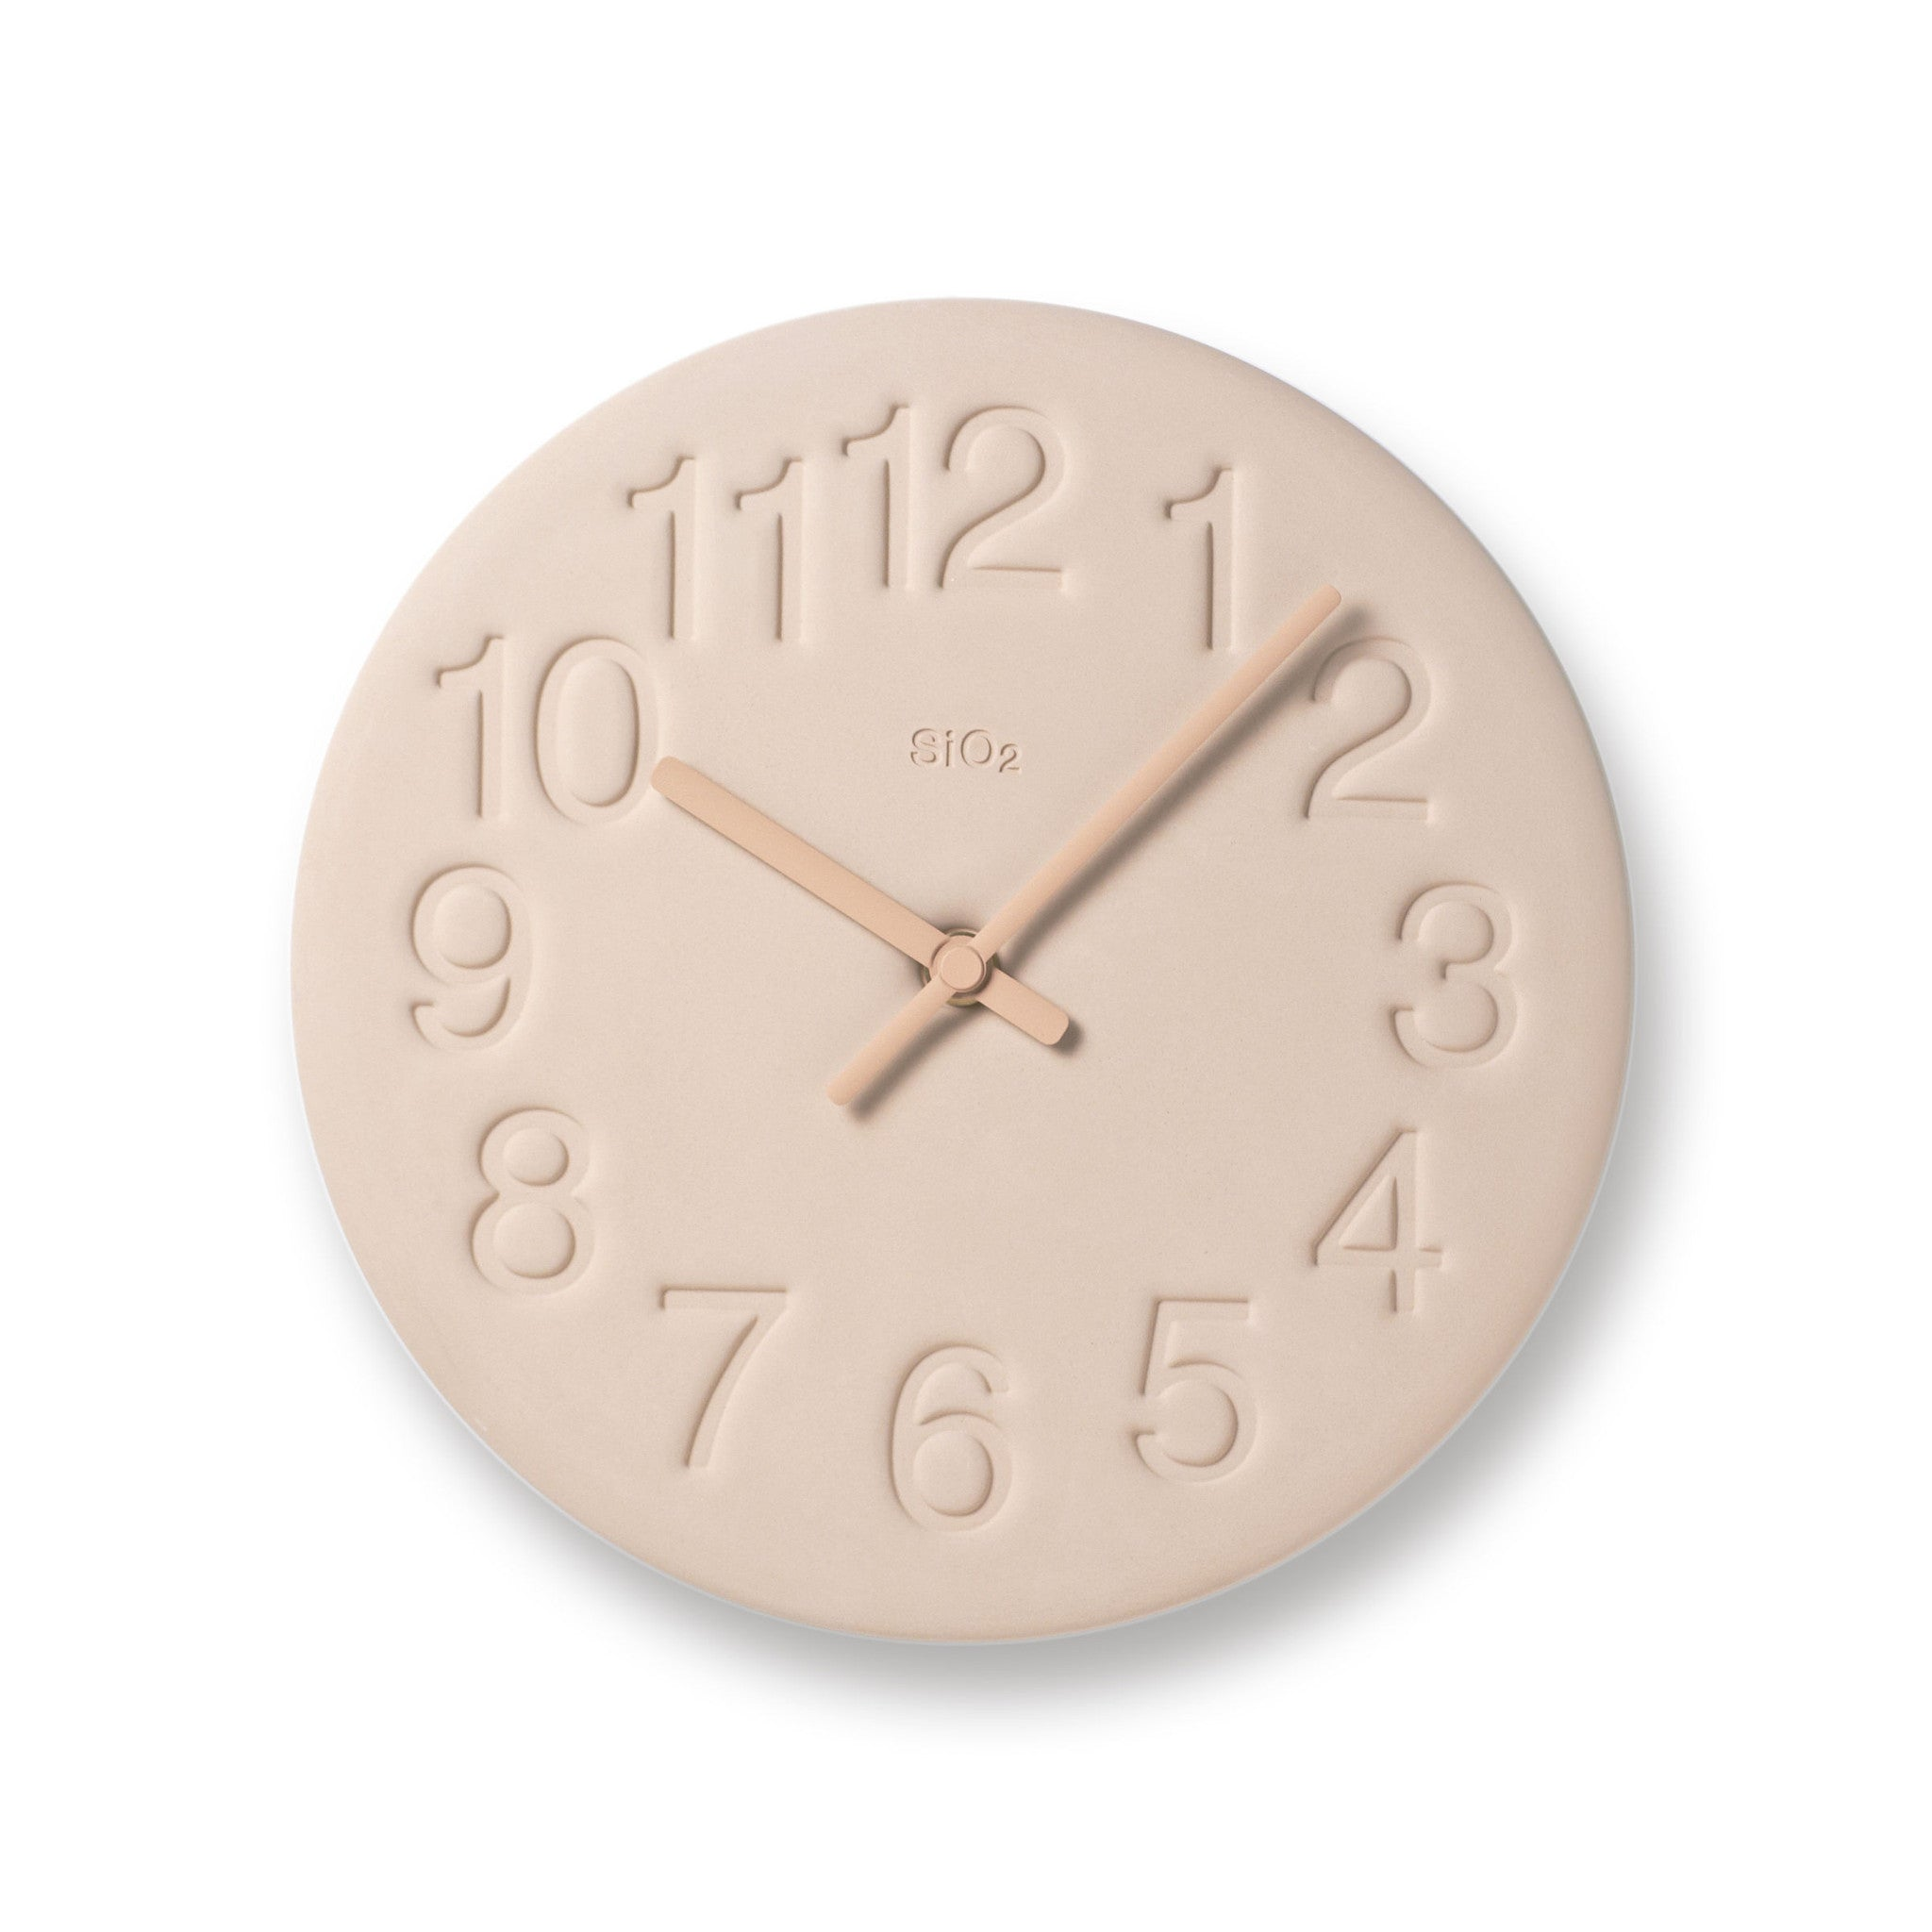 Earth Wall Clock In Pink Design By Lemnos BURKE DECOR